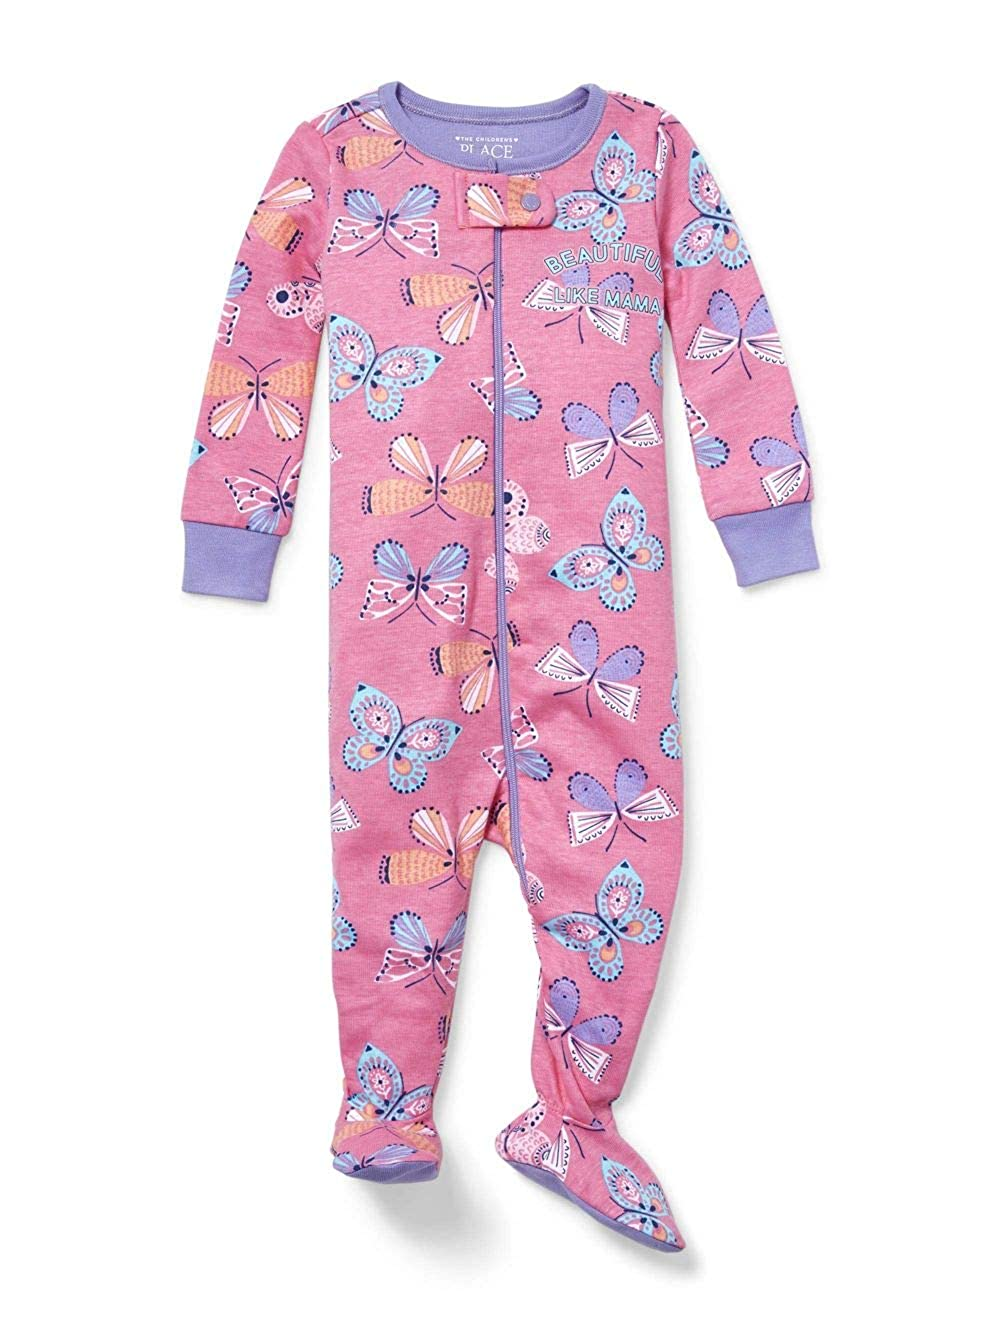 Place The Childrens Girls Beautiful Like Mama Butterfly Pajama Sleeper Size 2T Pink